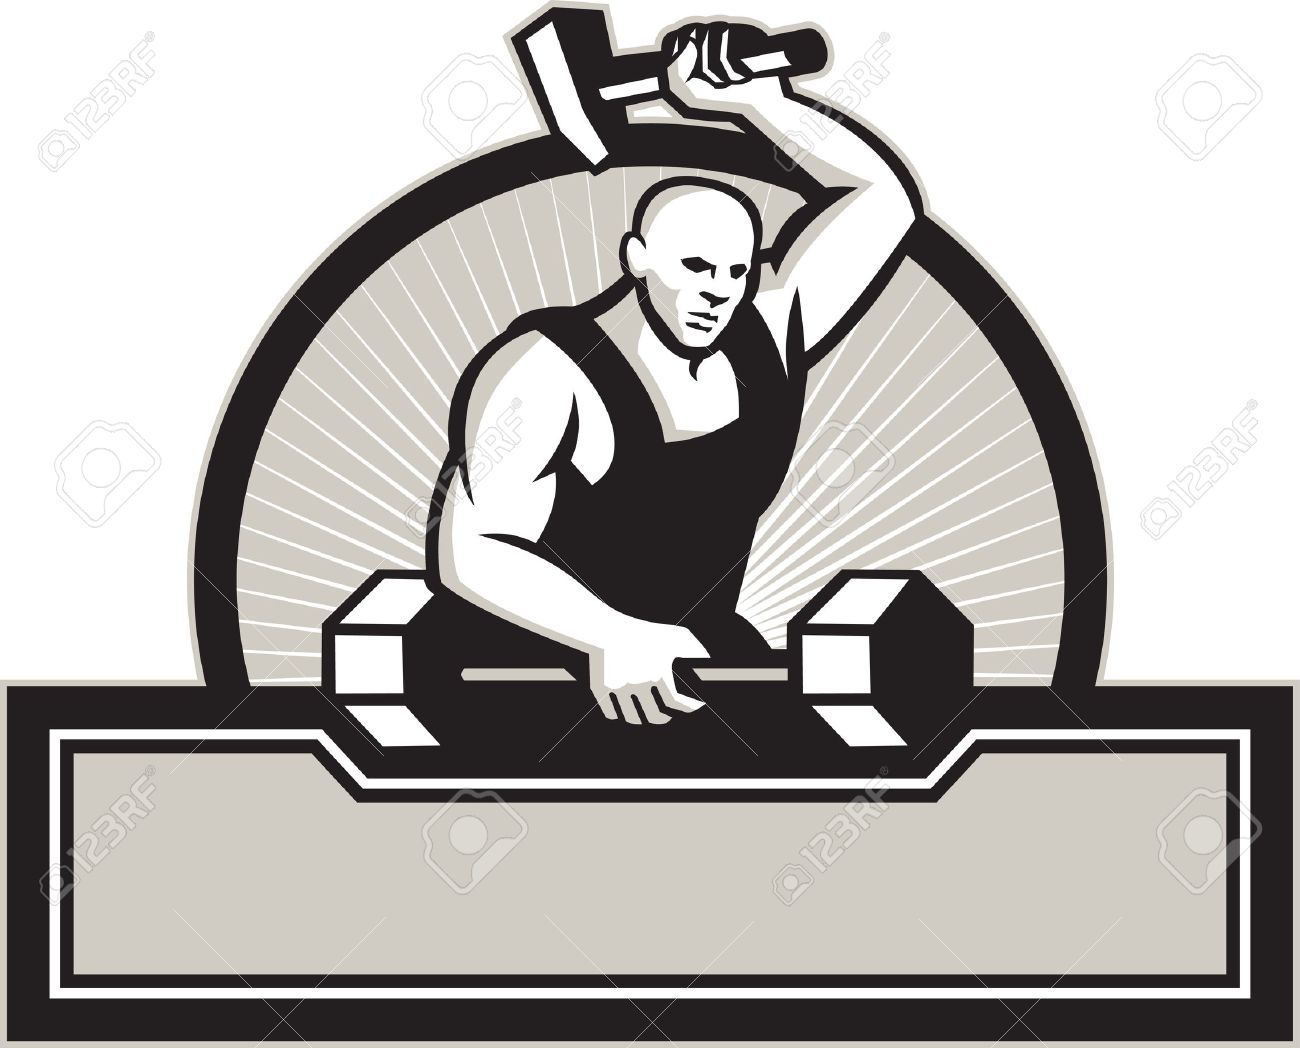 Illustration Of A Blacksmith With Hammer Forging Striking A.